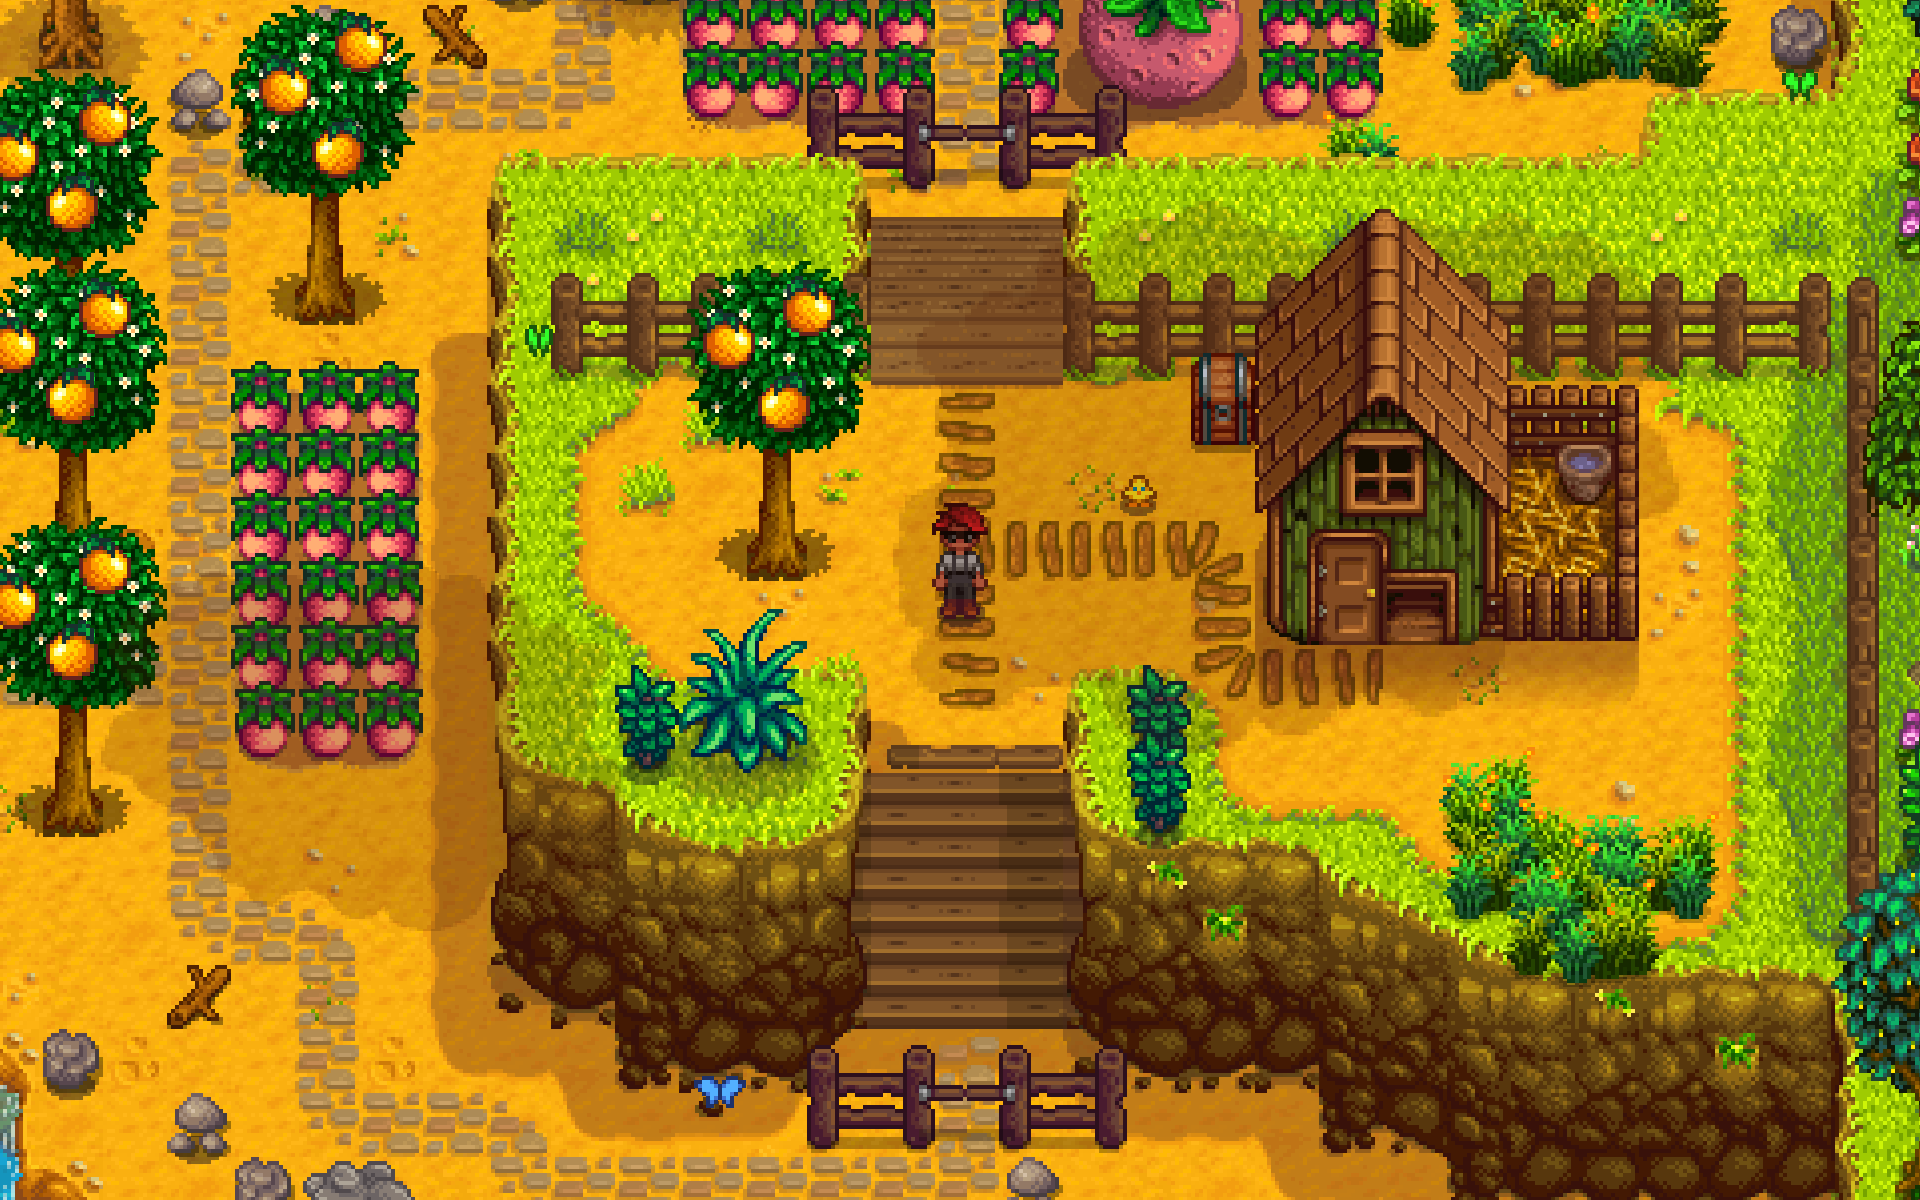 Stardew Valley (PS4, Xbox One, OS X, & PC)